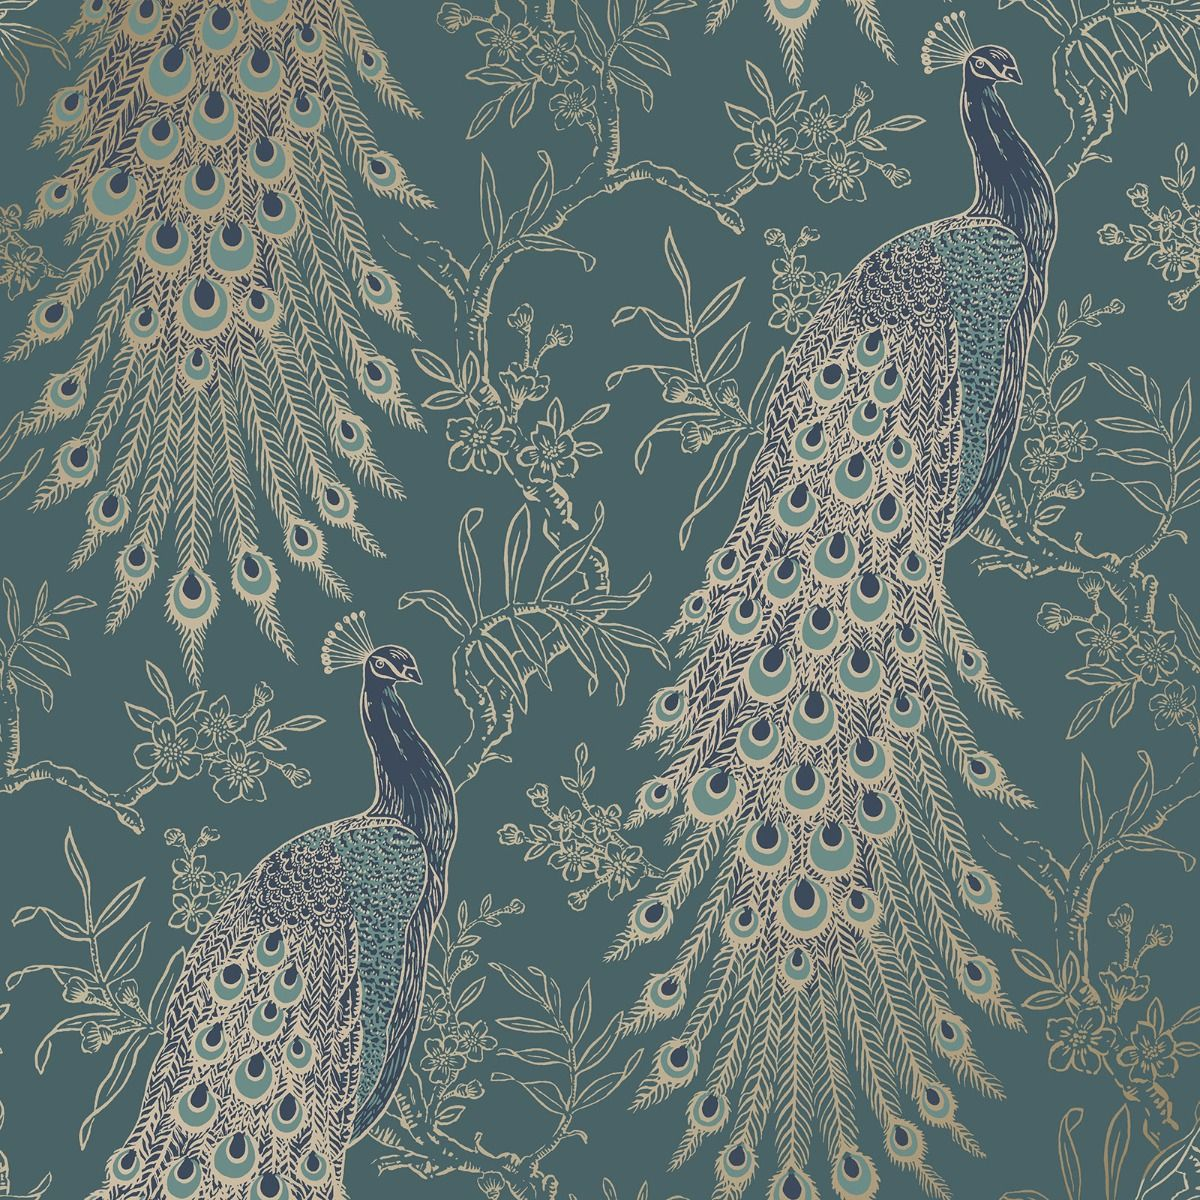 peacock wallpaper emerald green and gold wallpaper